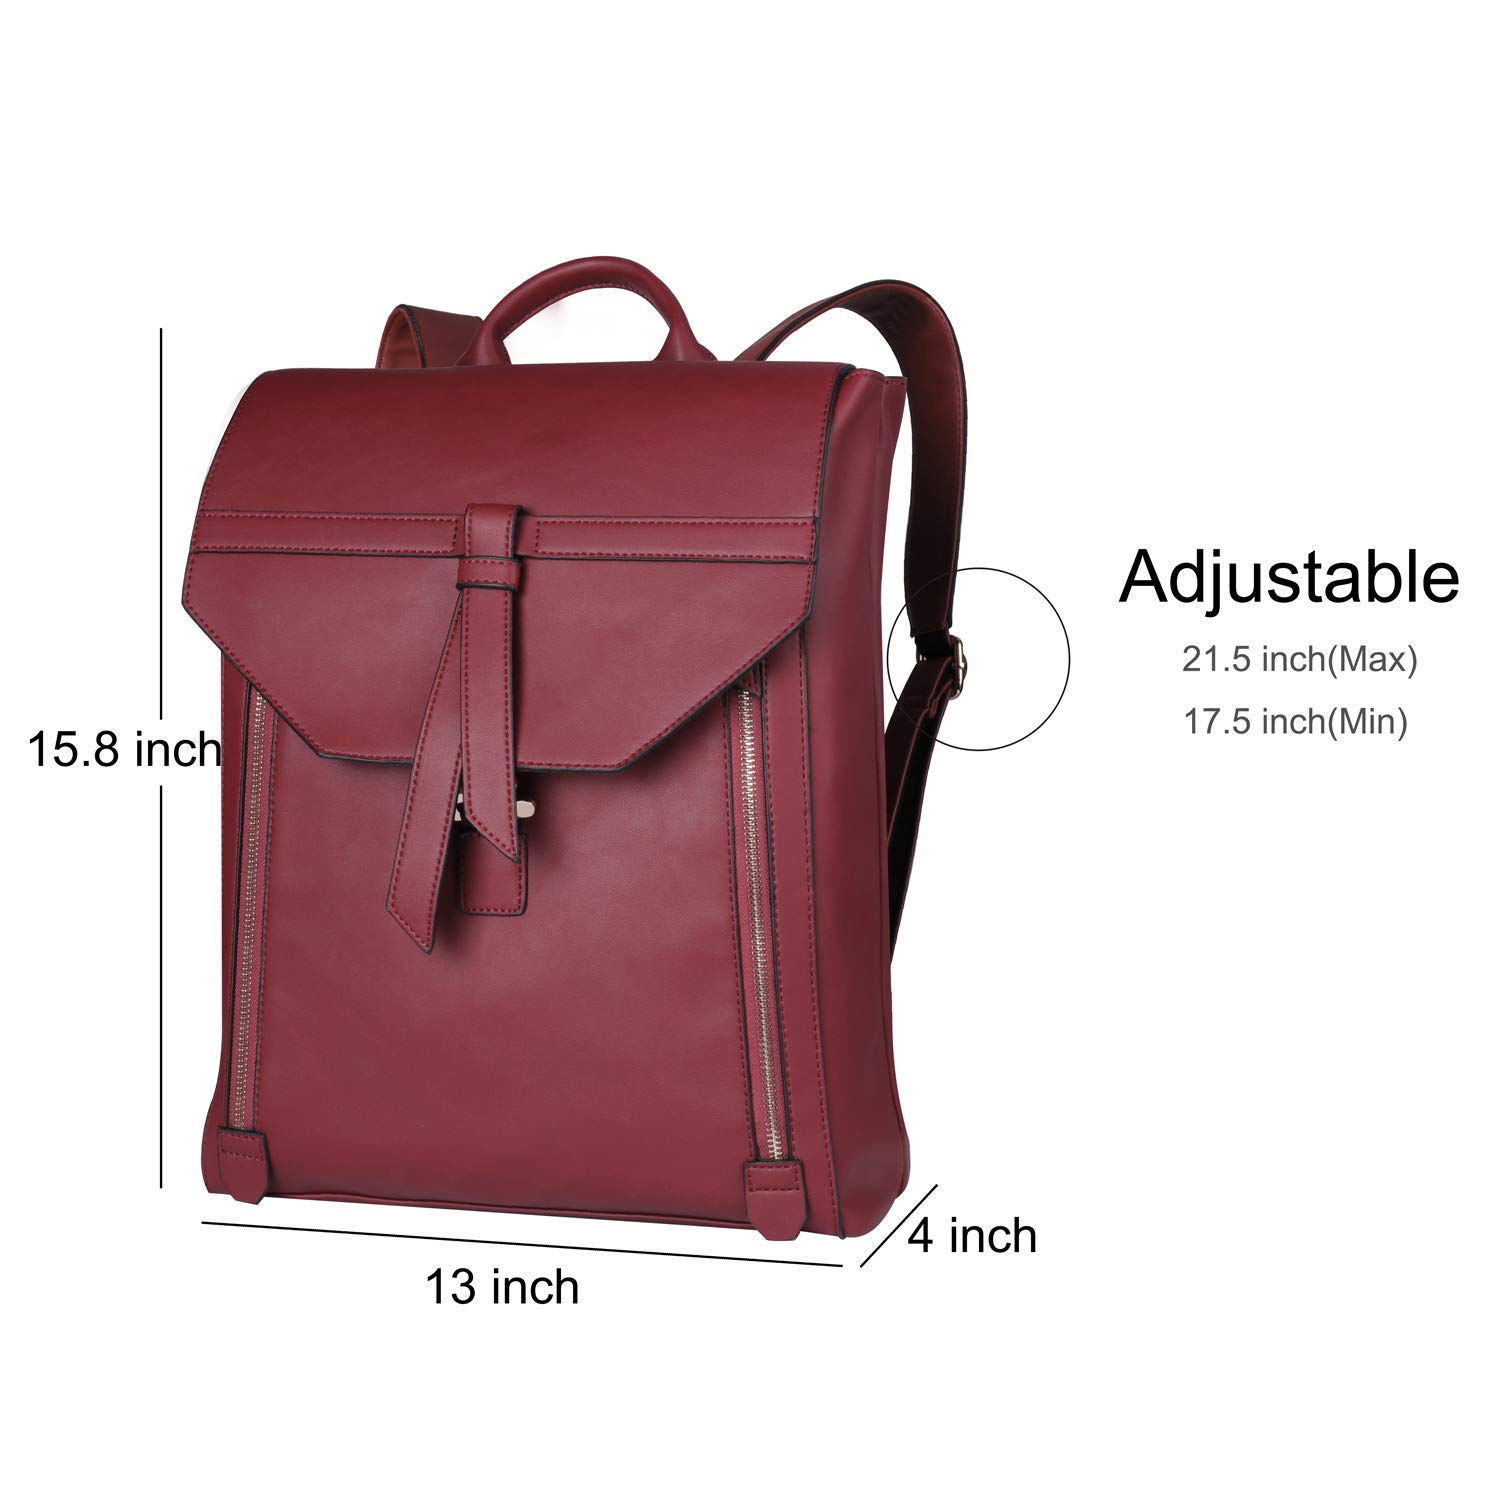 Estarer Women Fashion Leather Backpack for Travel Work College Laides PU Leather Backpack by Estarer (Image #2)